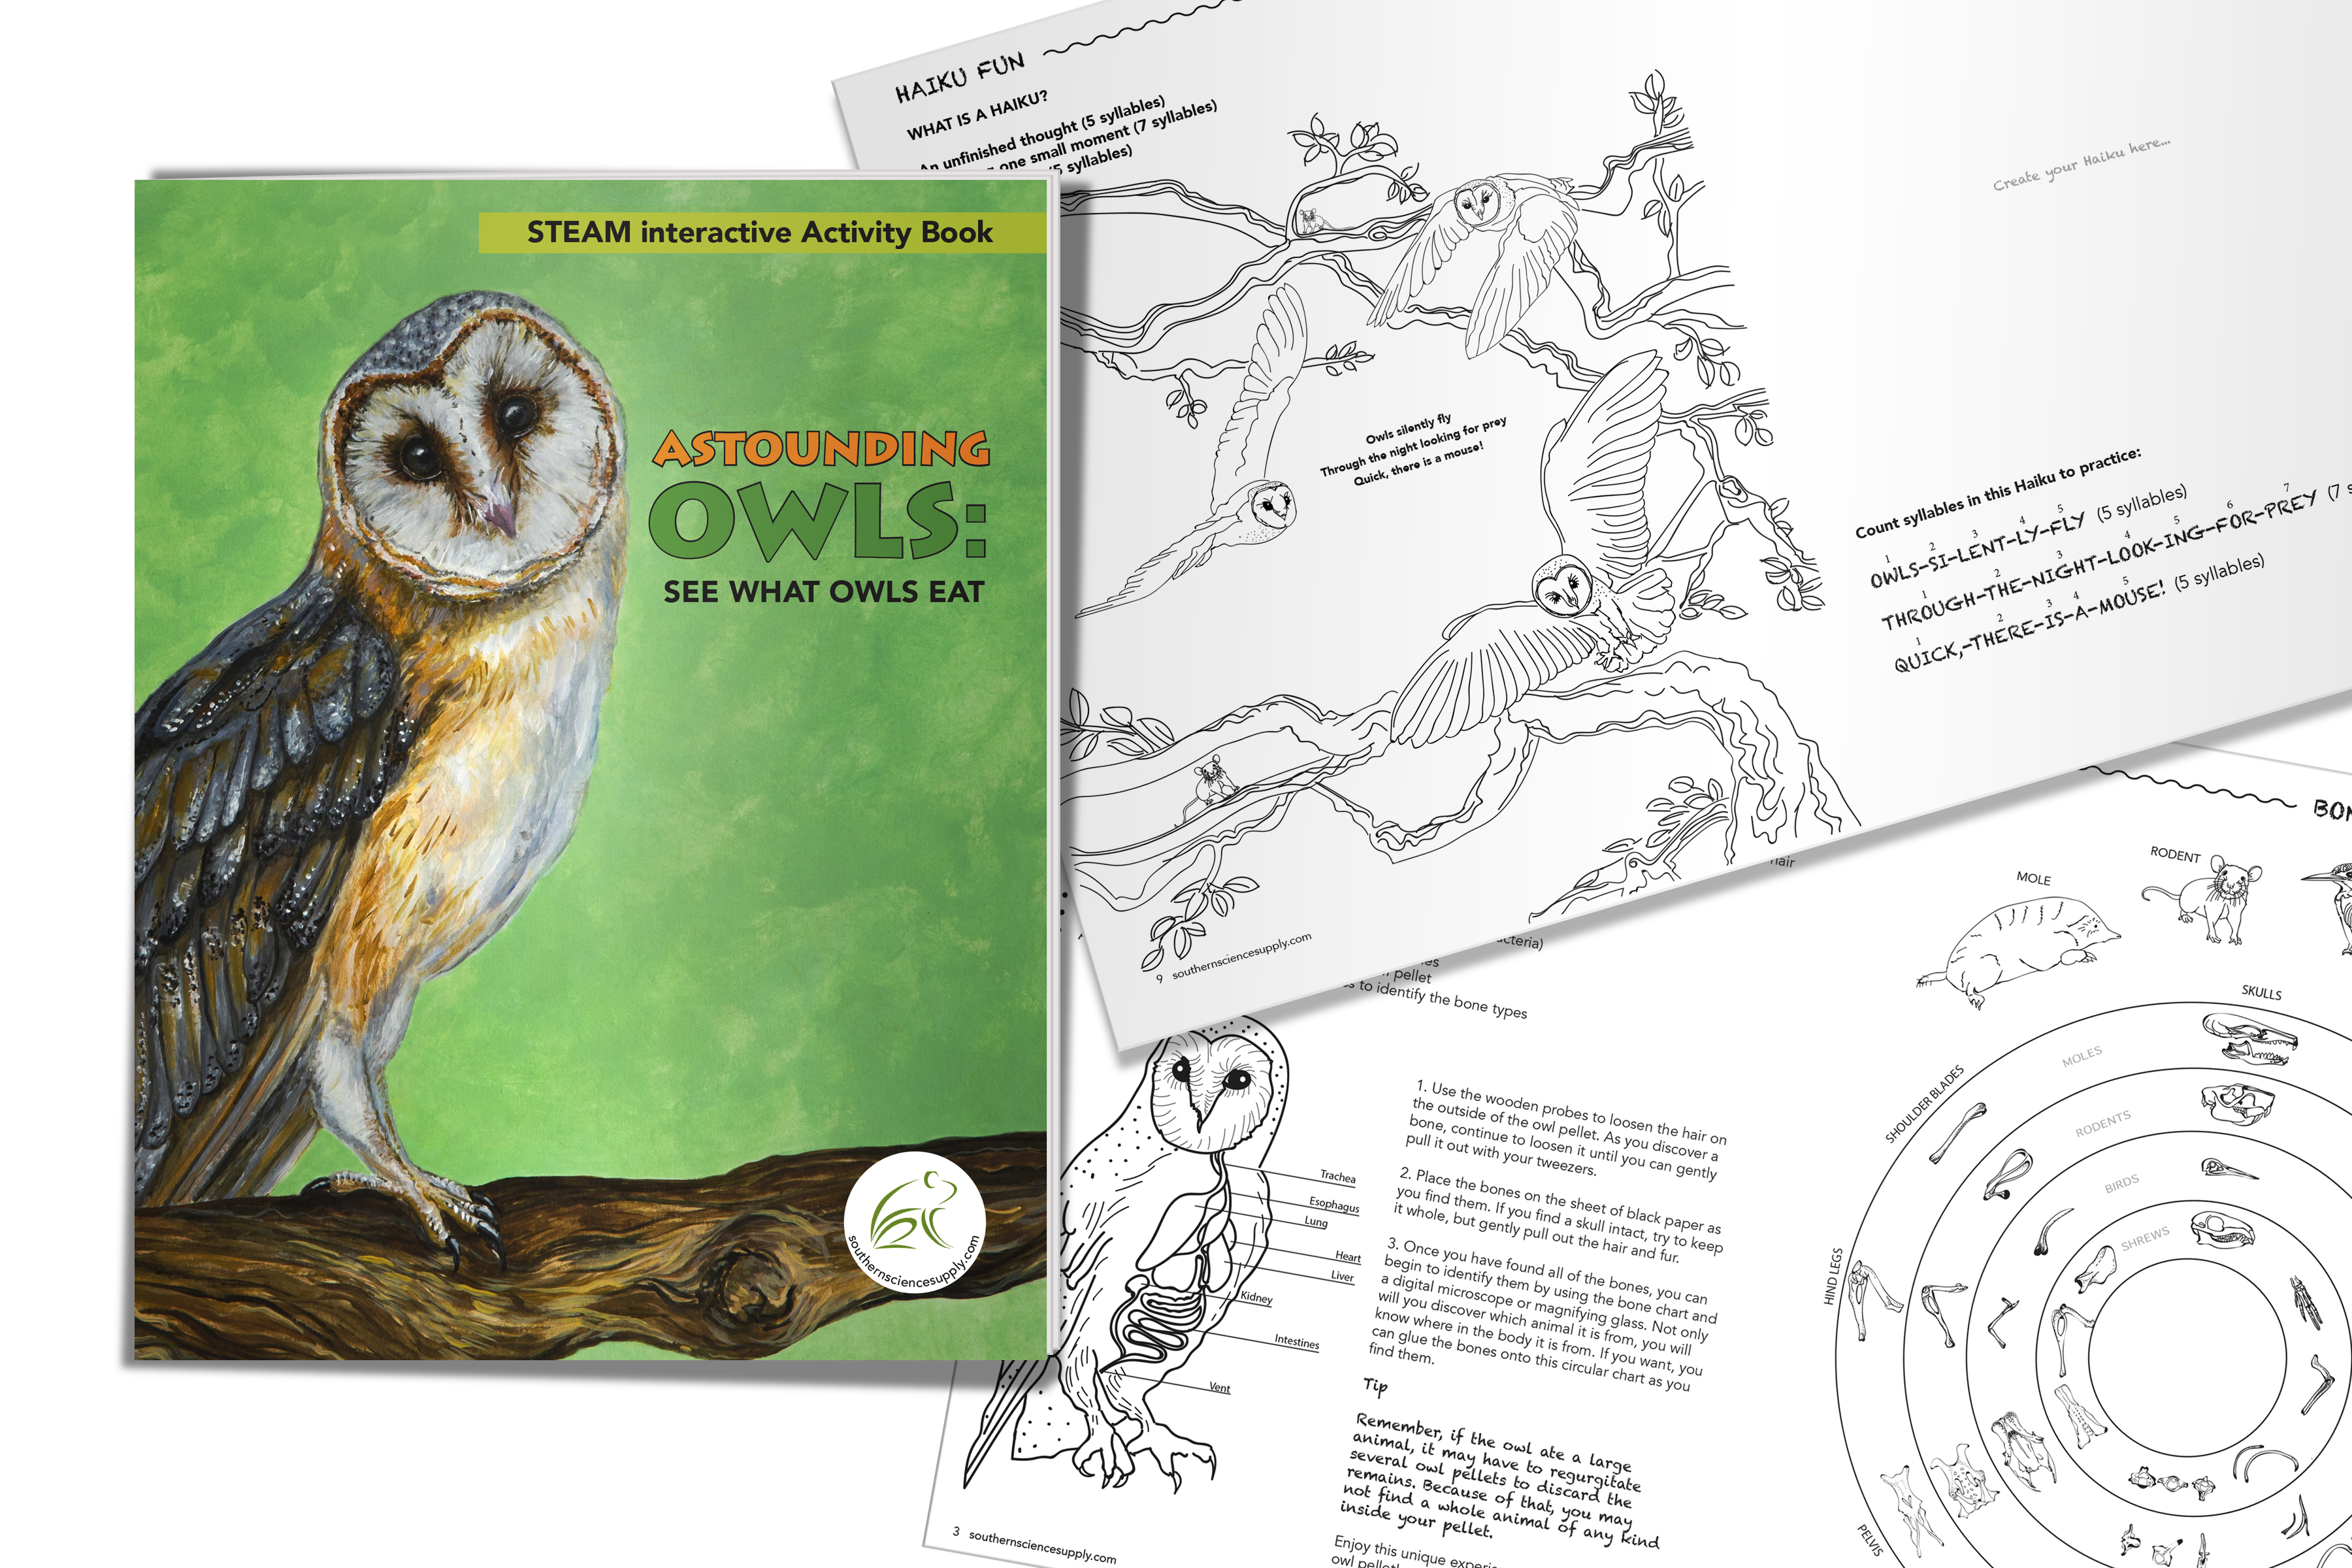 Astounding Owls See What Owls Eat